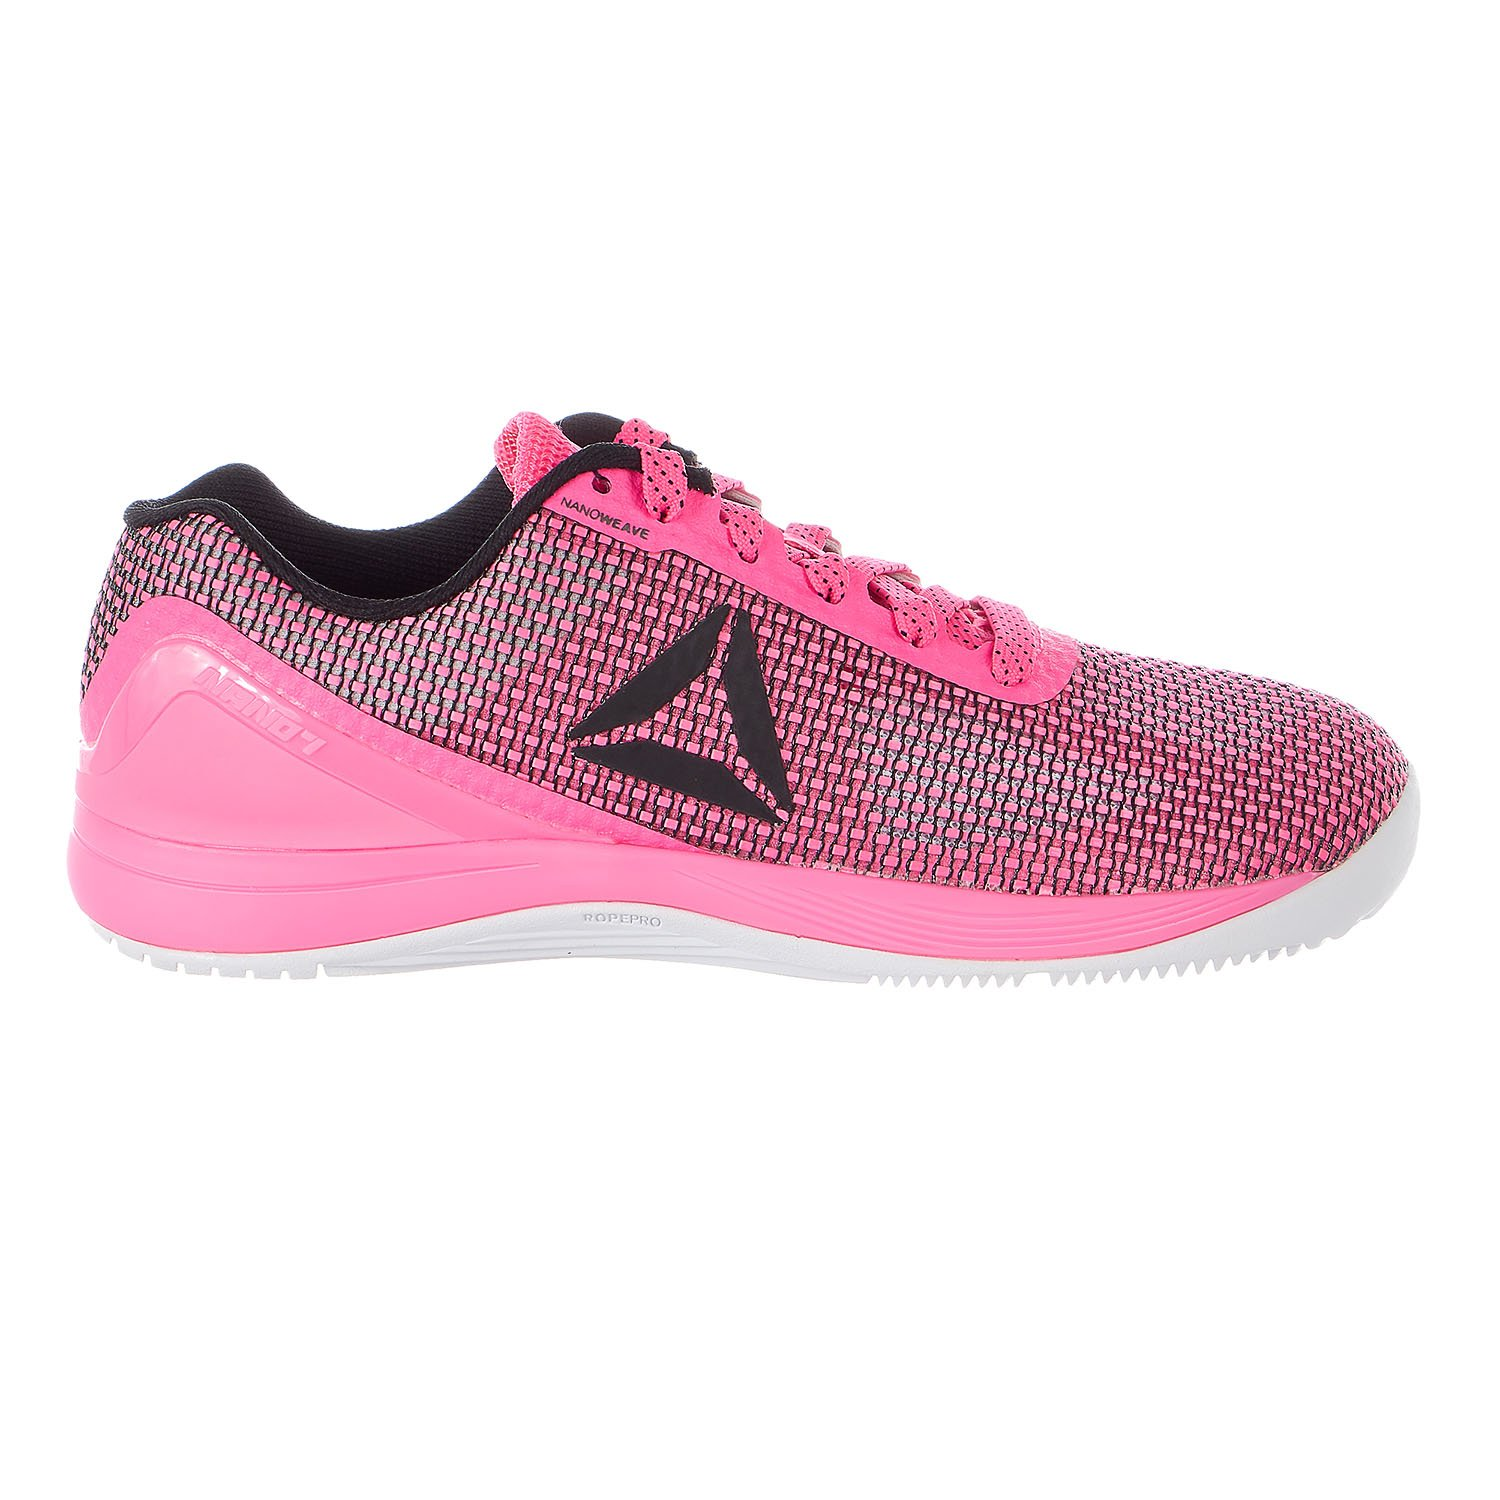 Reebok Women's R Crossfit Nano 7.0 Sneaker, Women's Poison Pink/Black/White, 7.5 M US